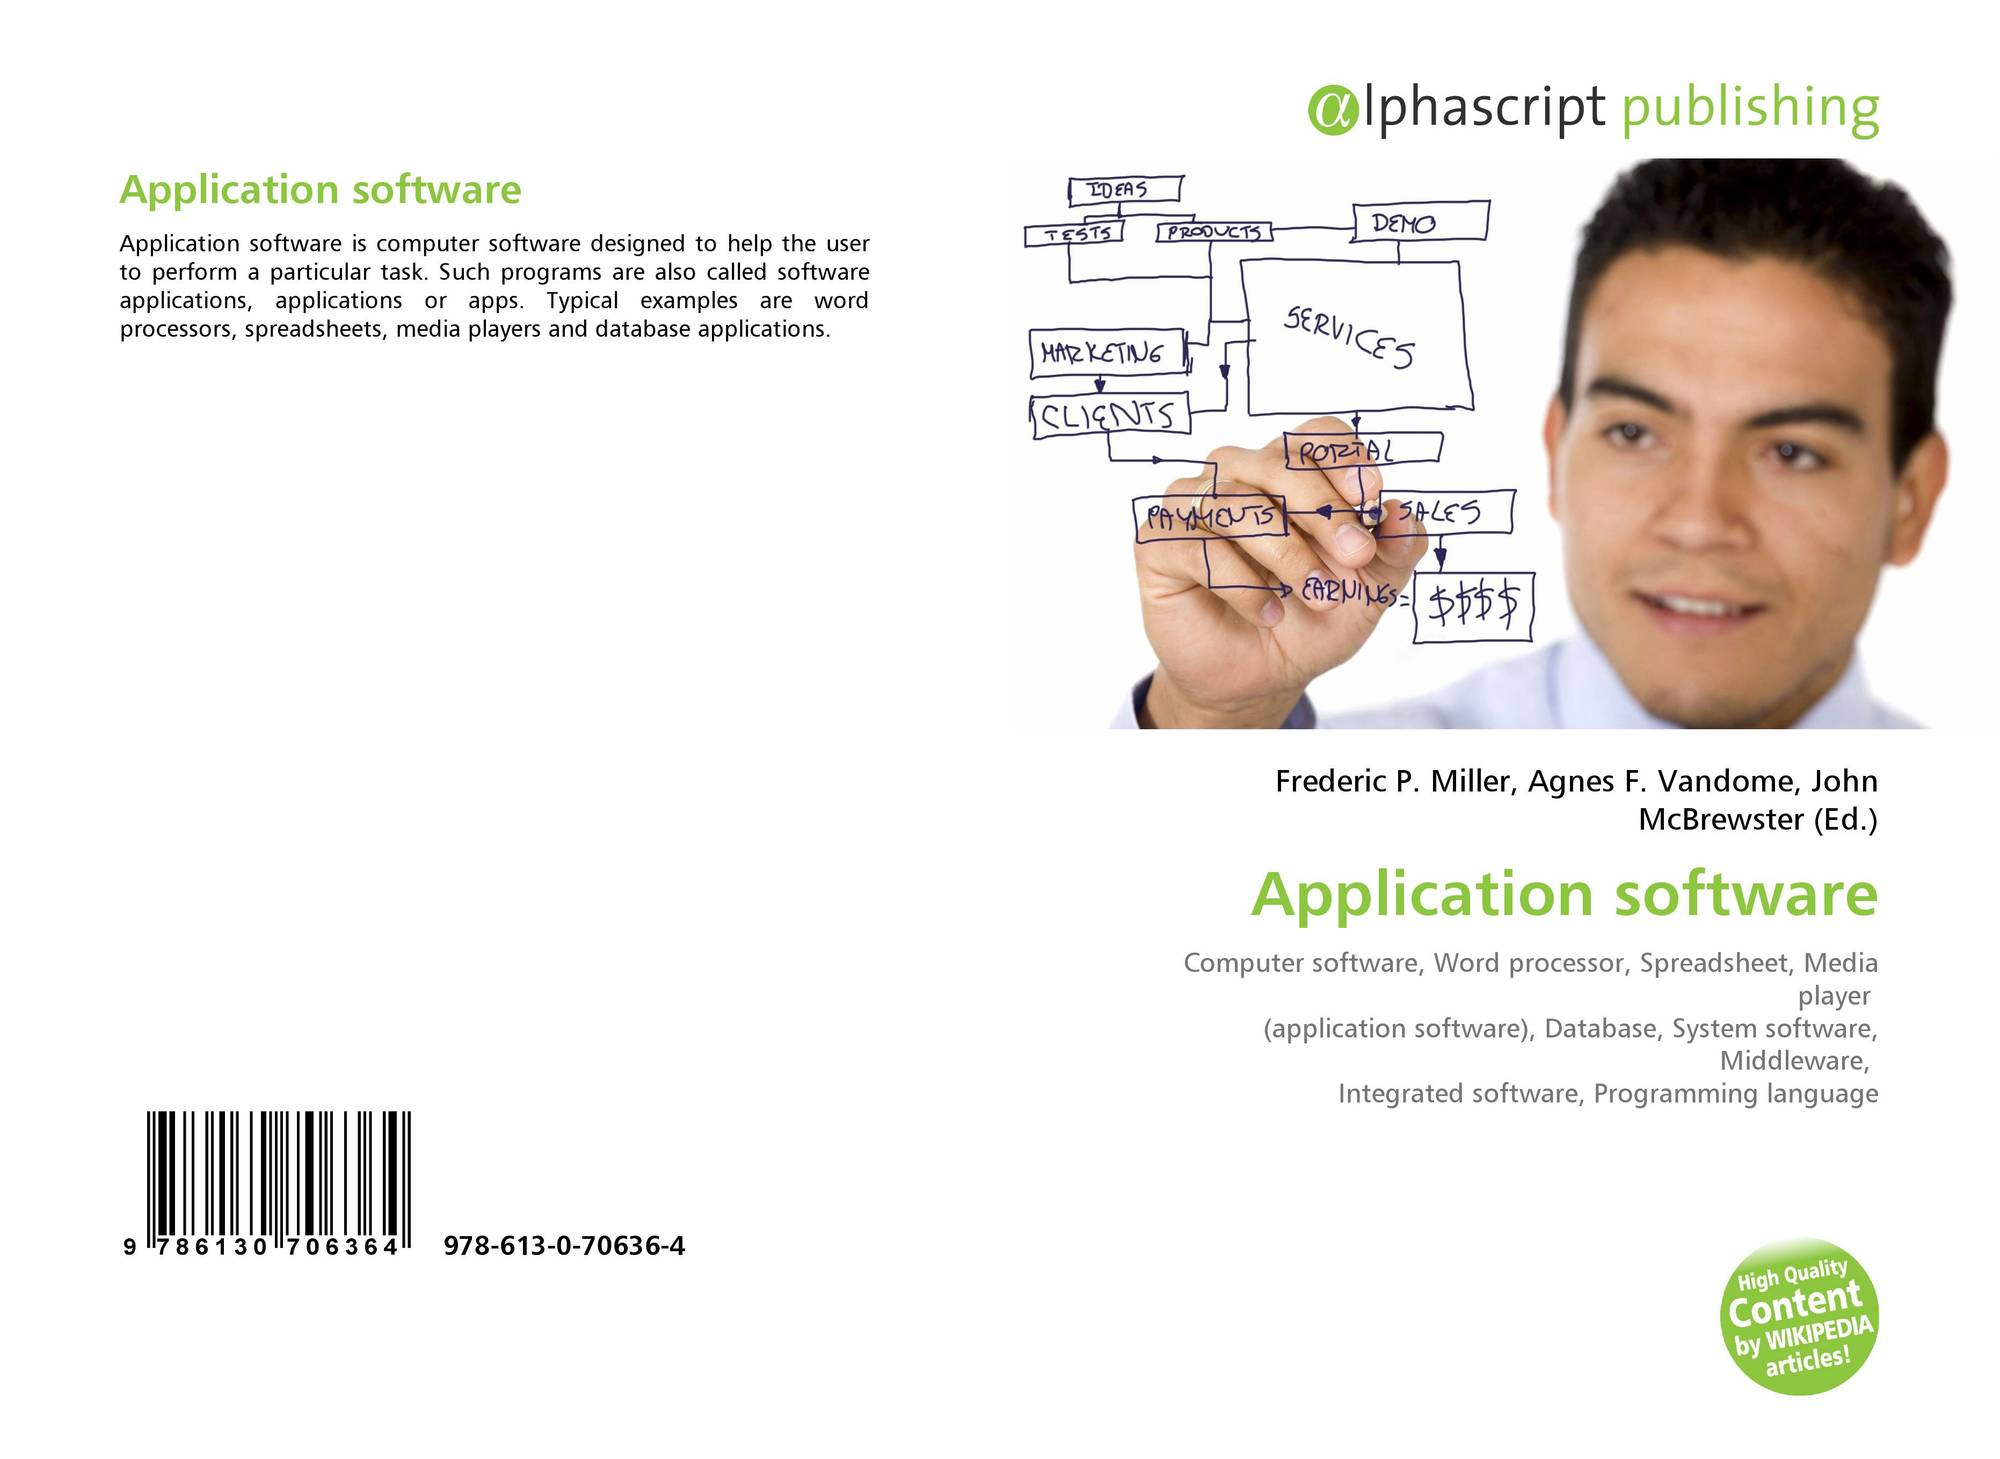 Application software, 978-613-0-70636-4, 6130706367 ,9786130706364